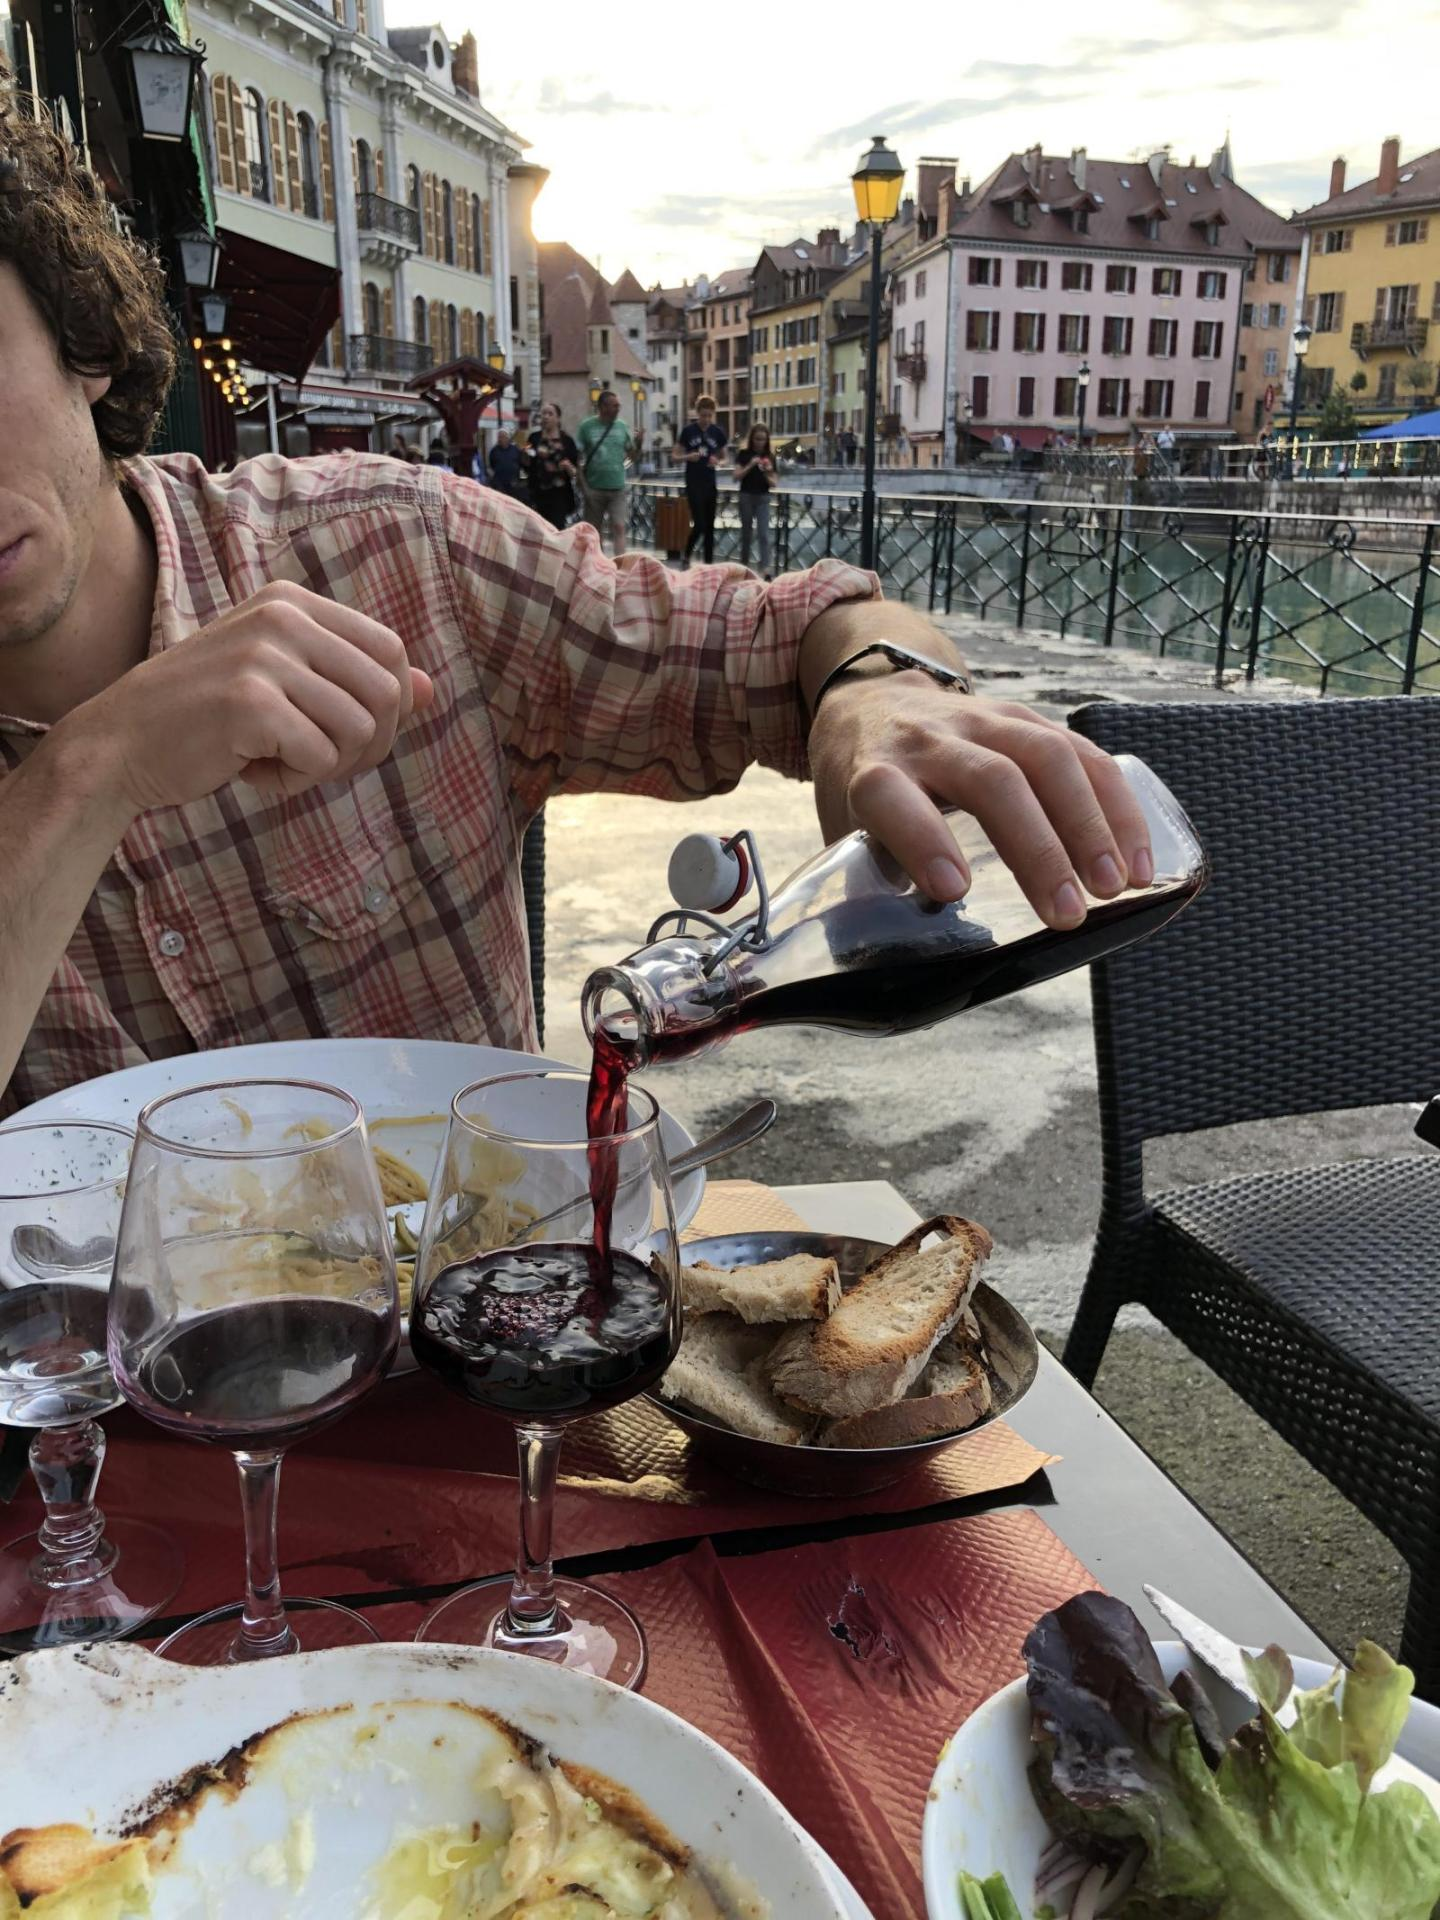 5 Things I Learned from My First Trip to Europe